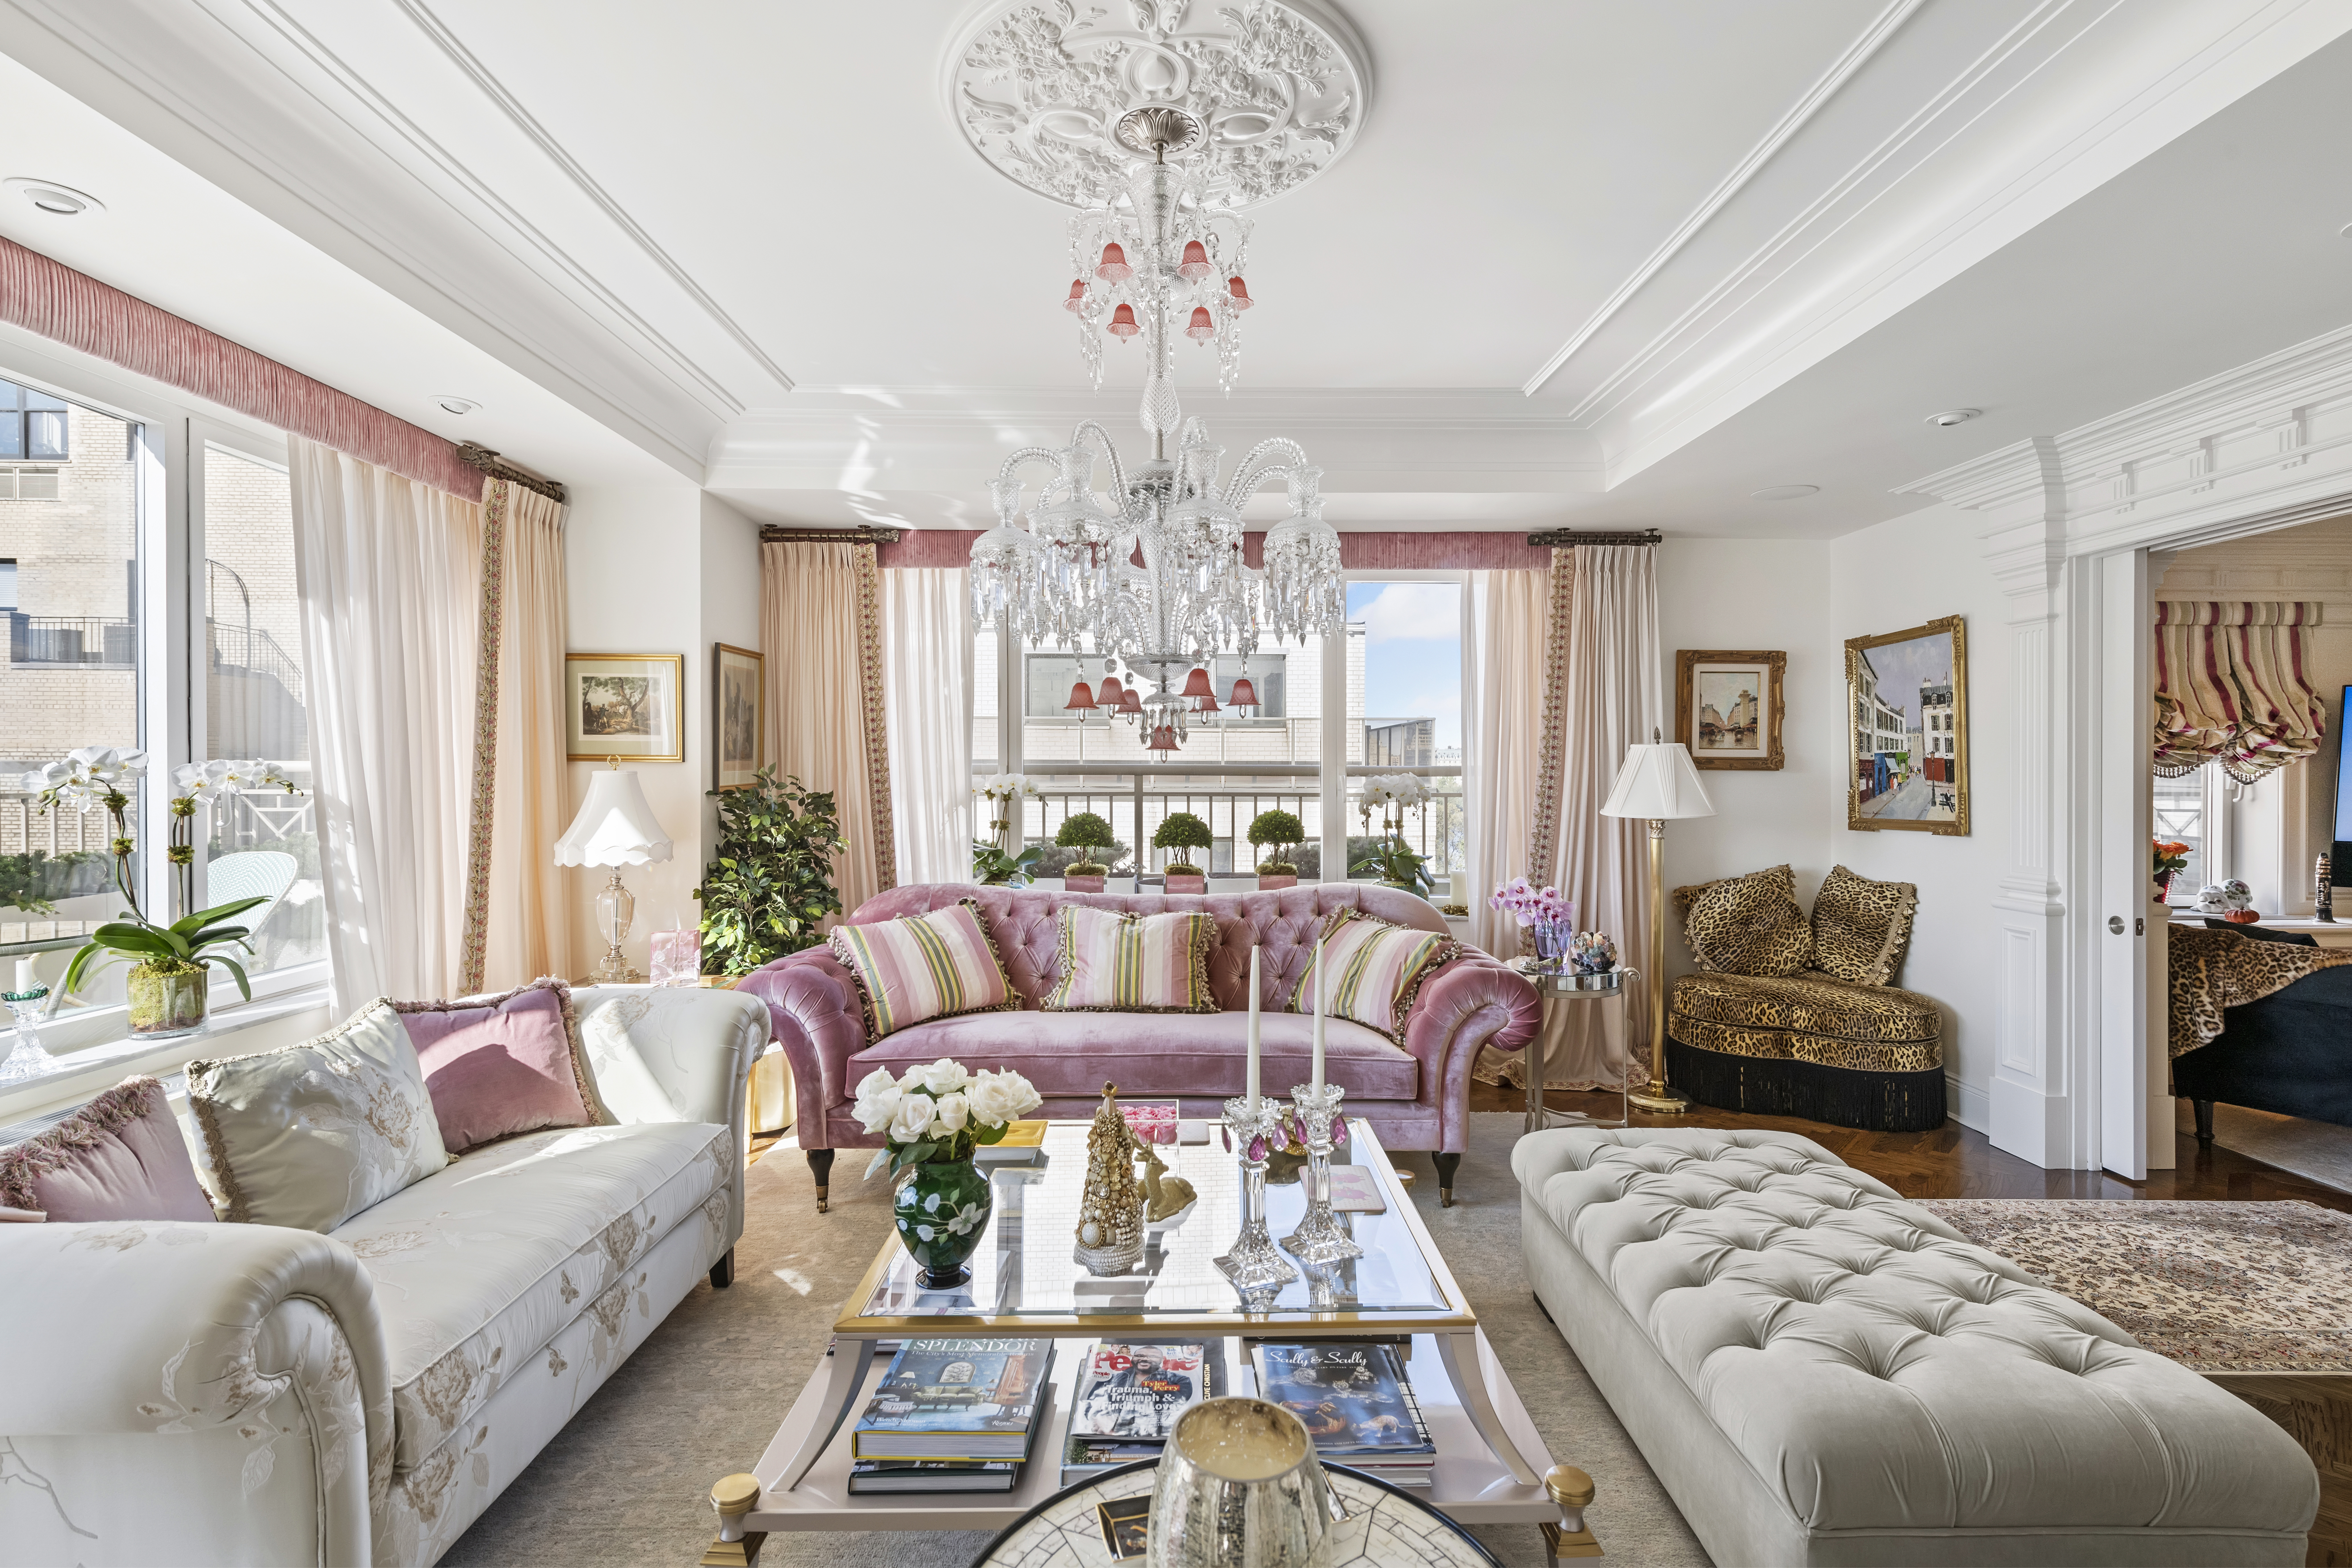 A living room with a chandelier, a pink couch, and a glass coffee table.